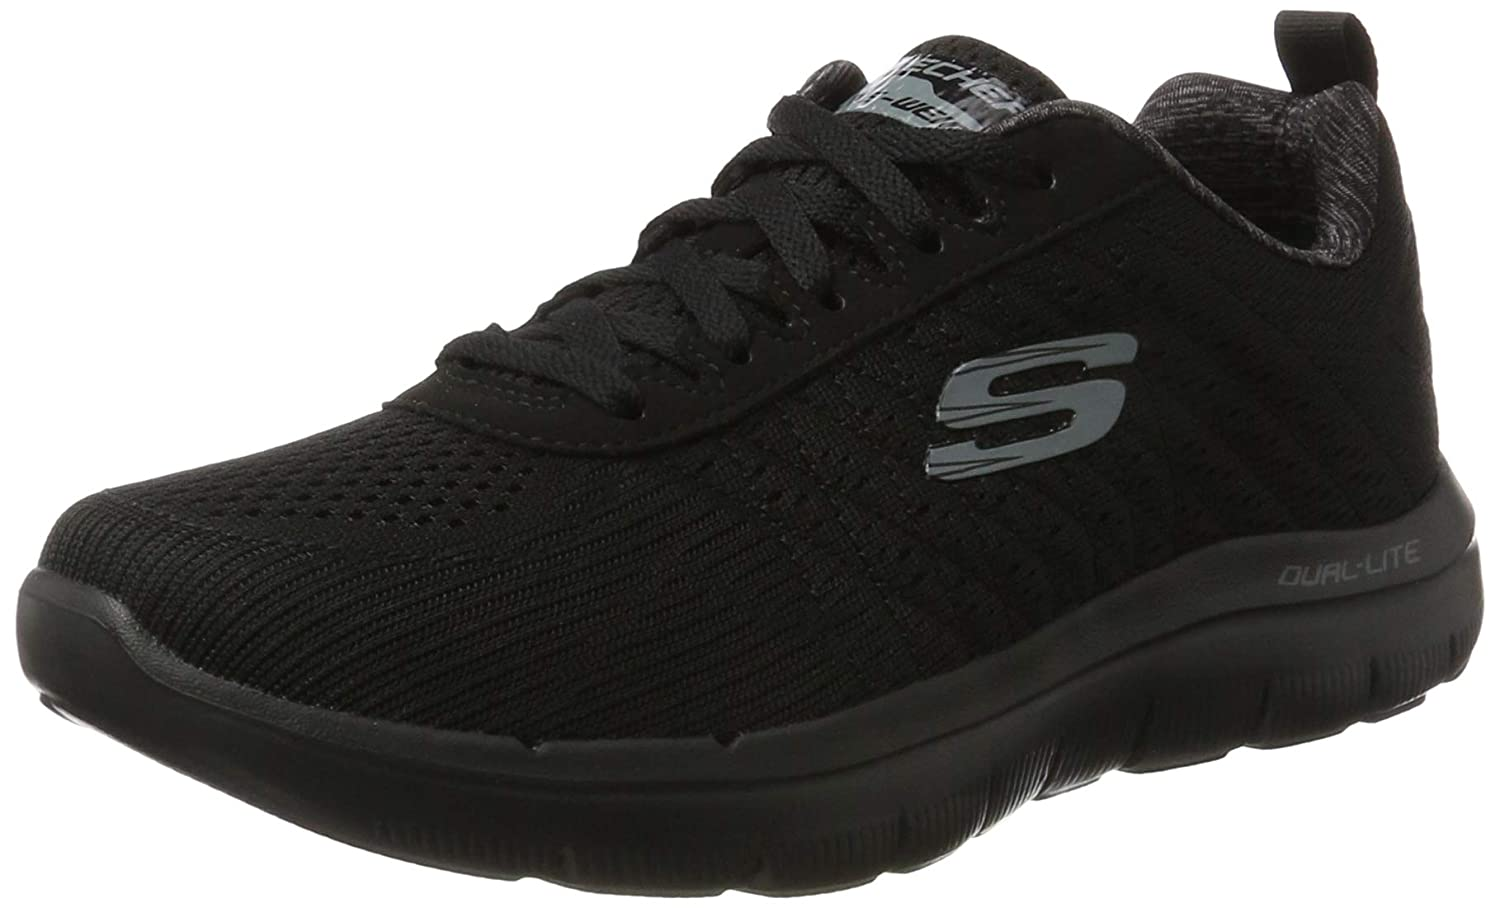 TALLA 38 EU. Skechers Flex Advantage 2.0 -Golden Point - Zapatillas Hombre